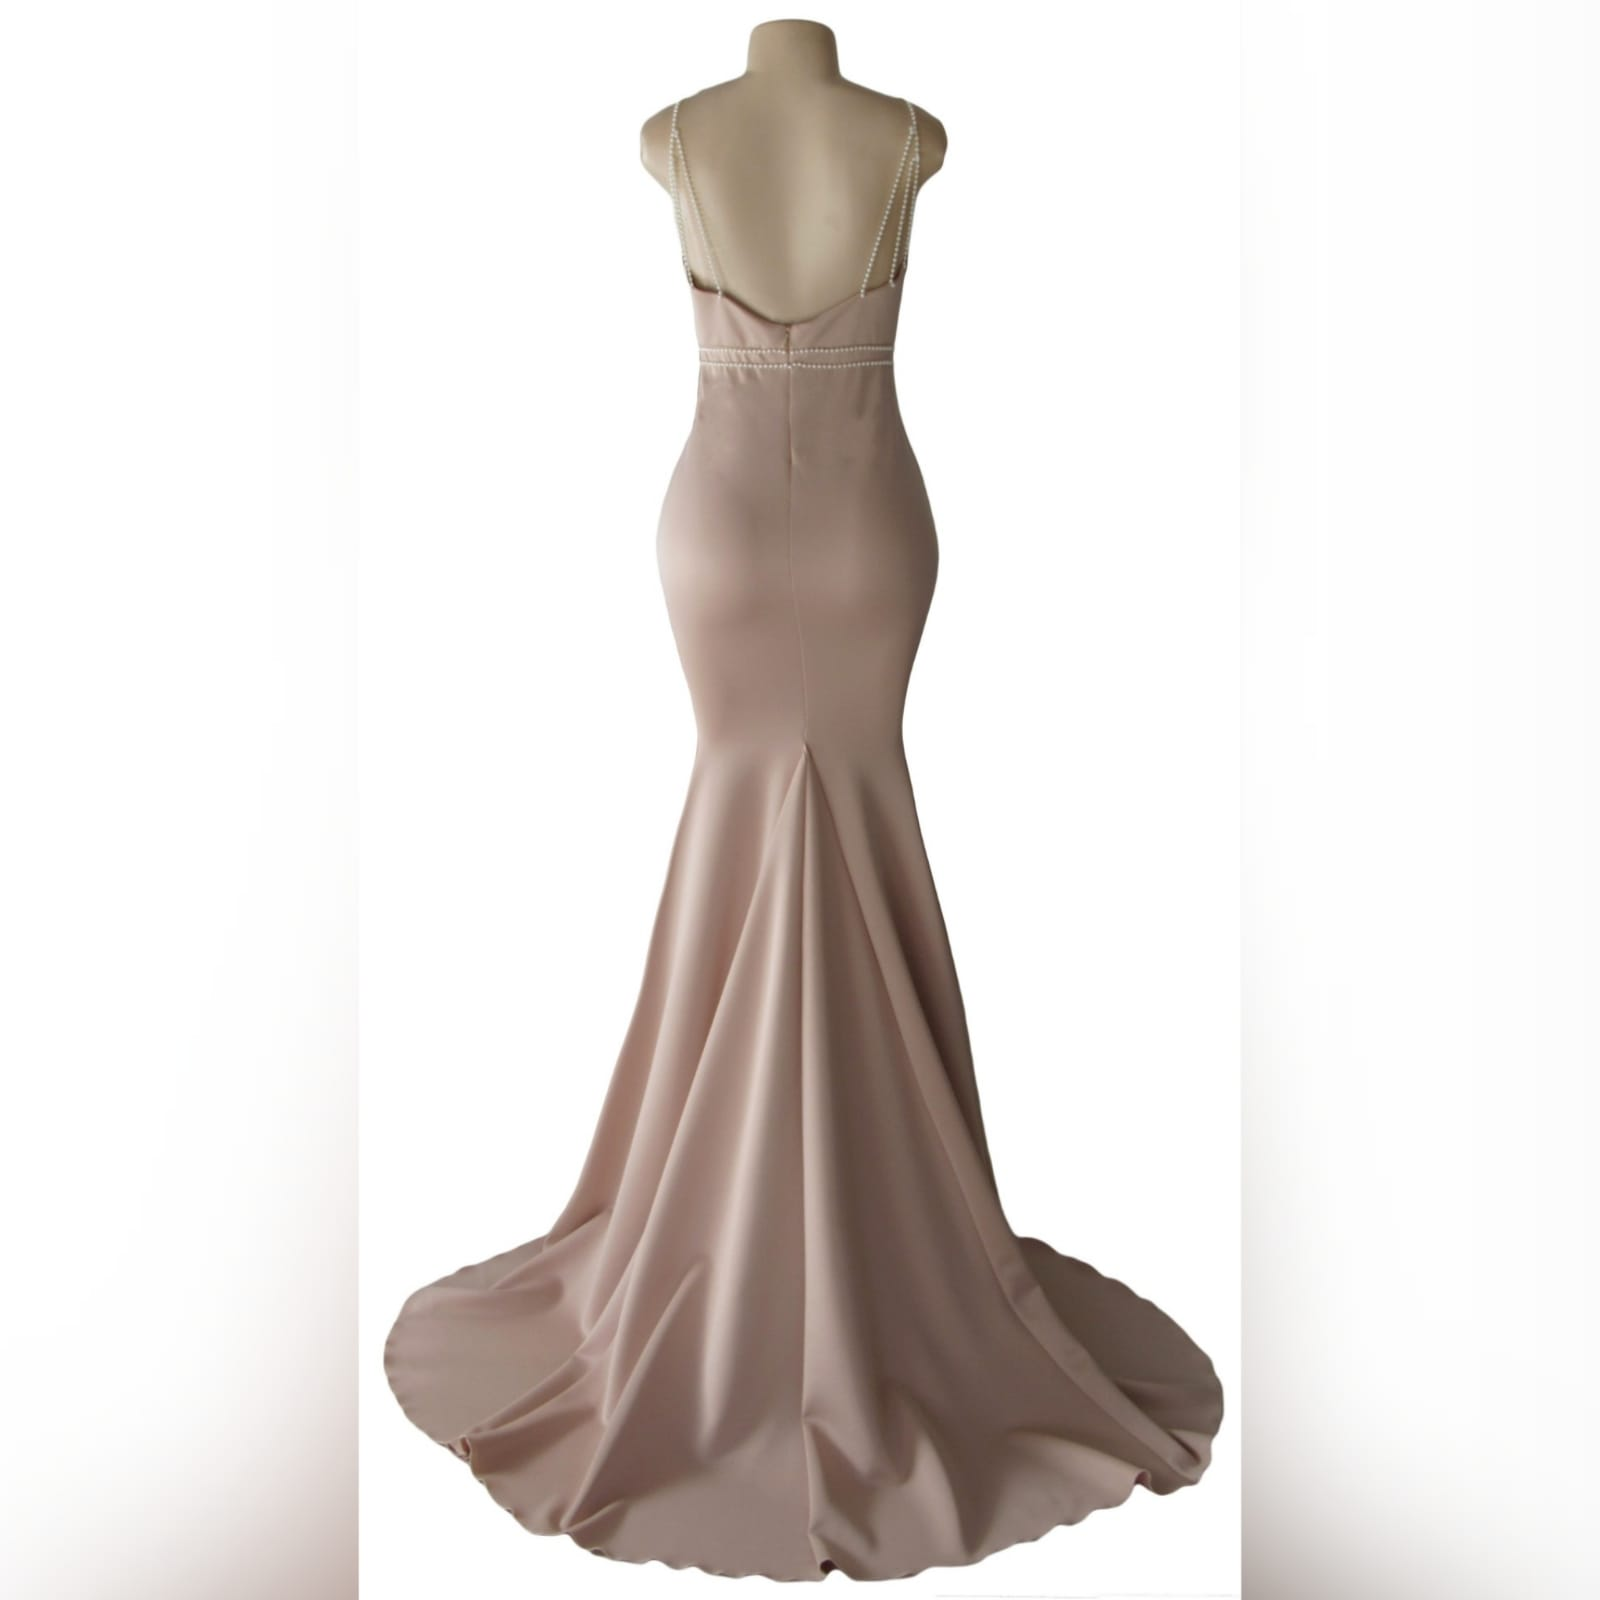 Pink nude soft mermaid prom dress with pearls 2 pink nude soft mermaid prom dress with an illusion plunging neckline, with a low open back, detailed with pearls on the waist and shoulder straps.